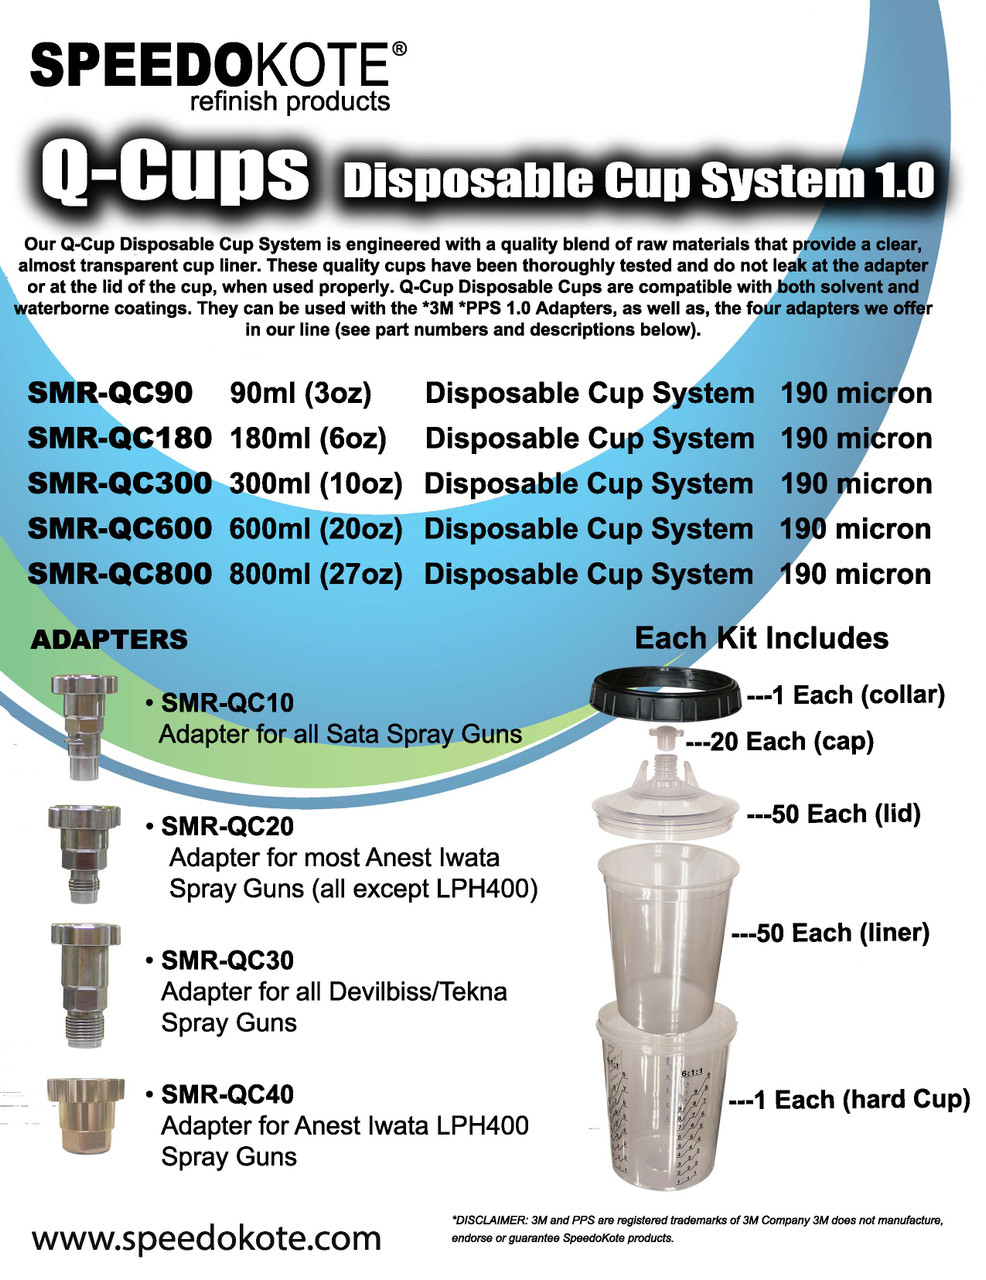 Speedokote Q-Cup 180ml Disposable Liner Cup System, 190 micron, Requires Adapter